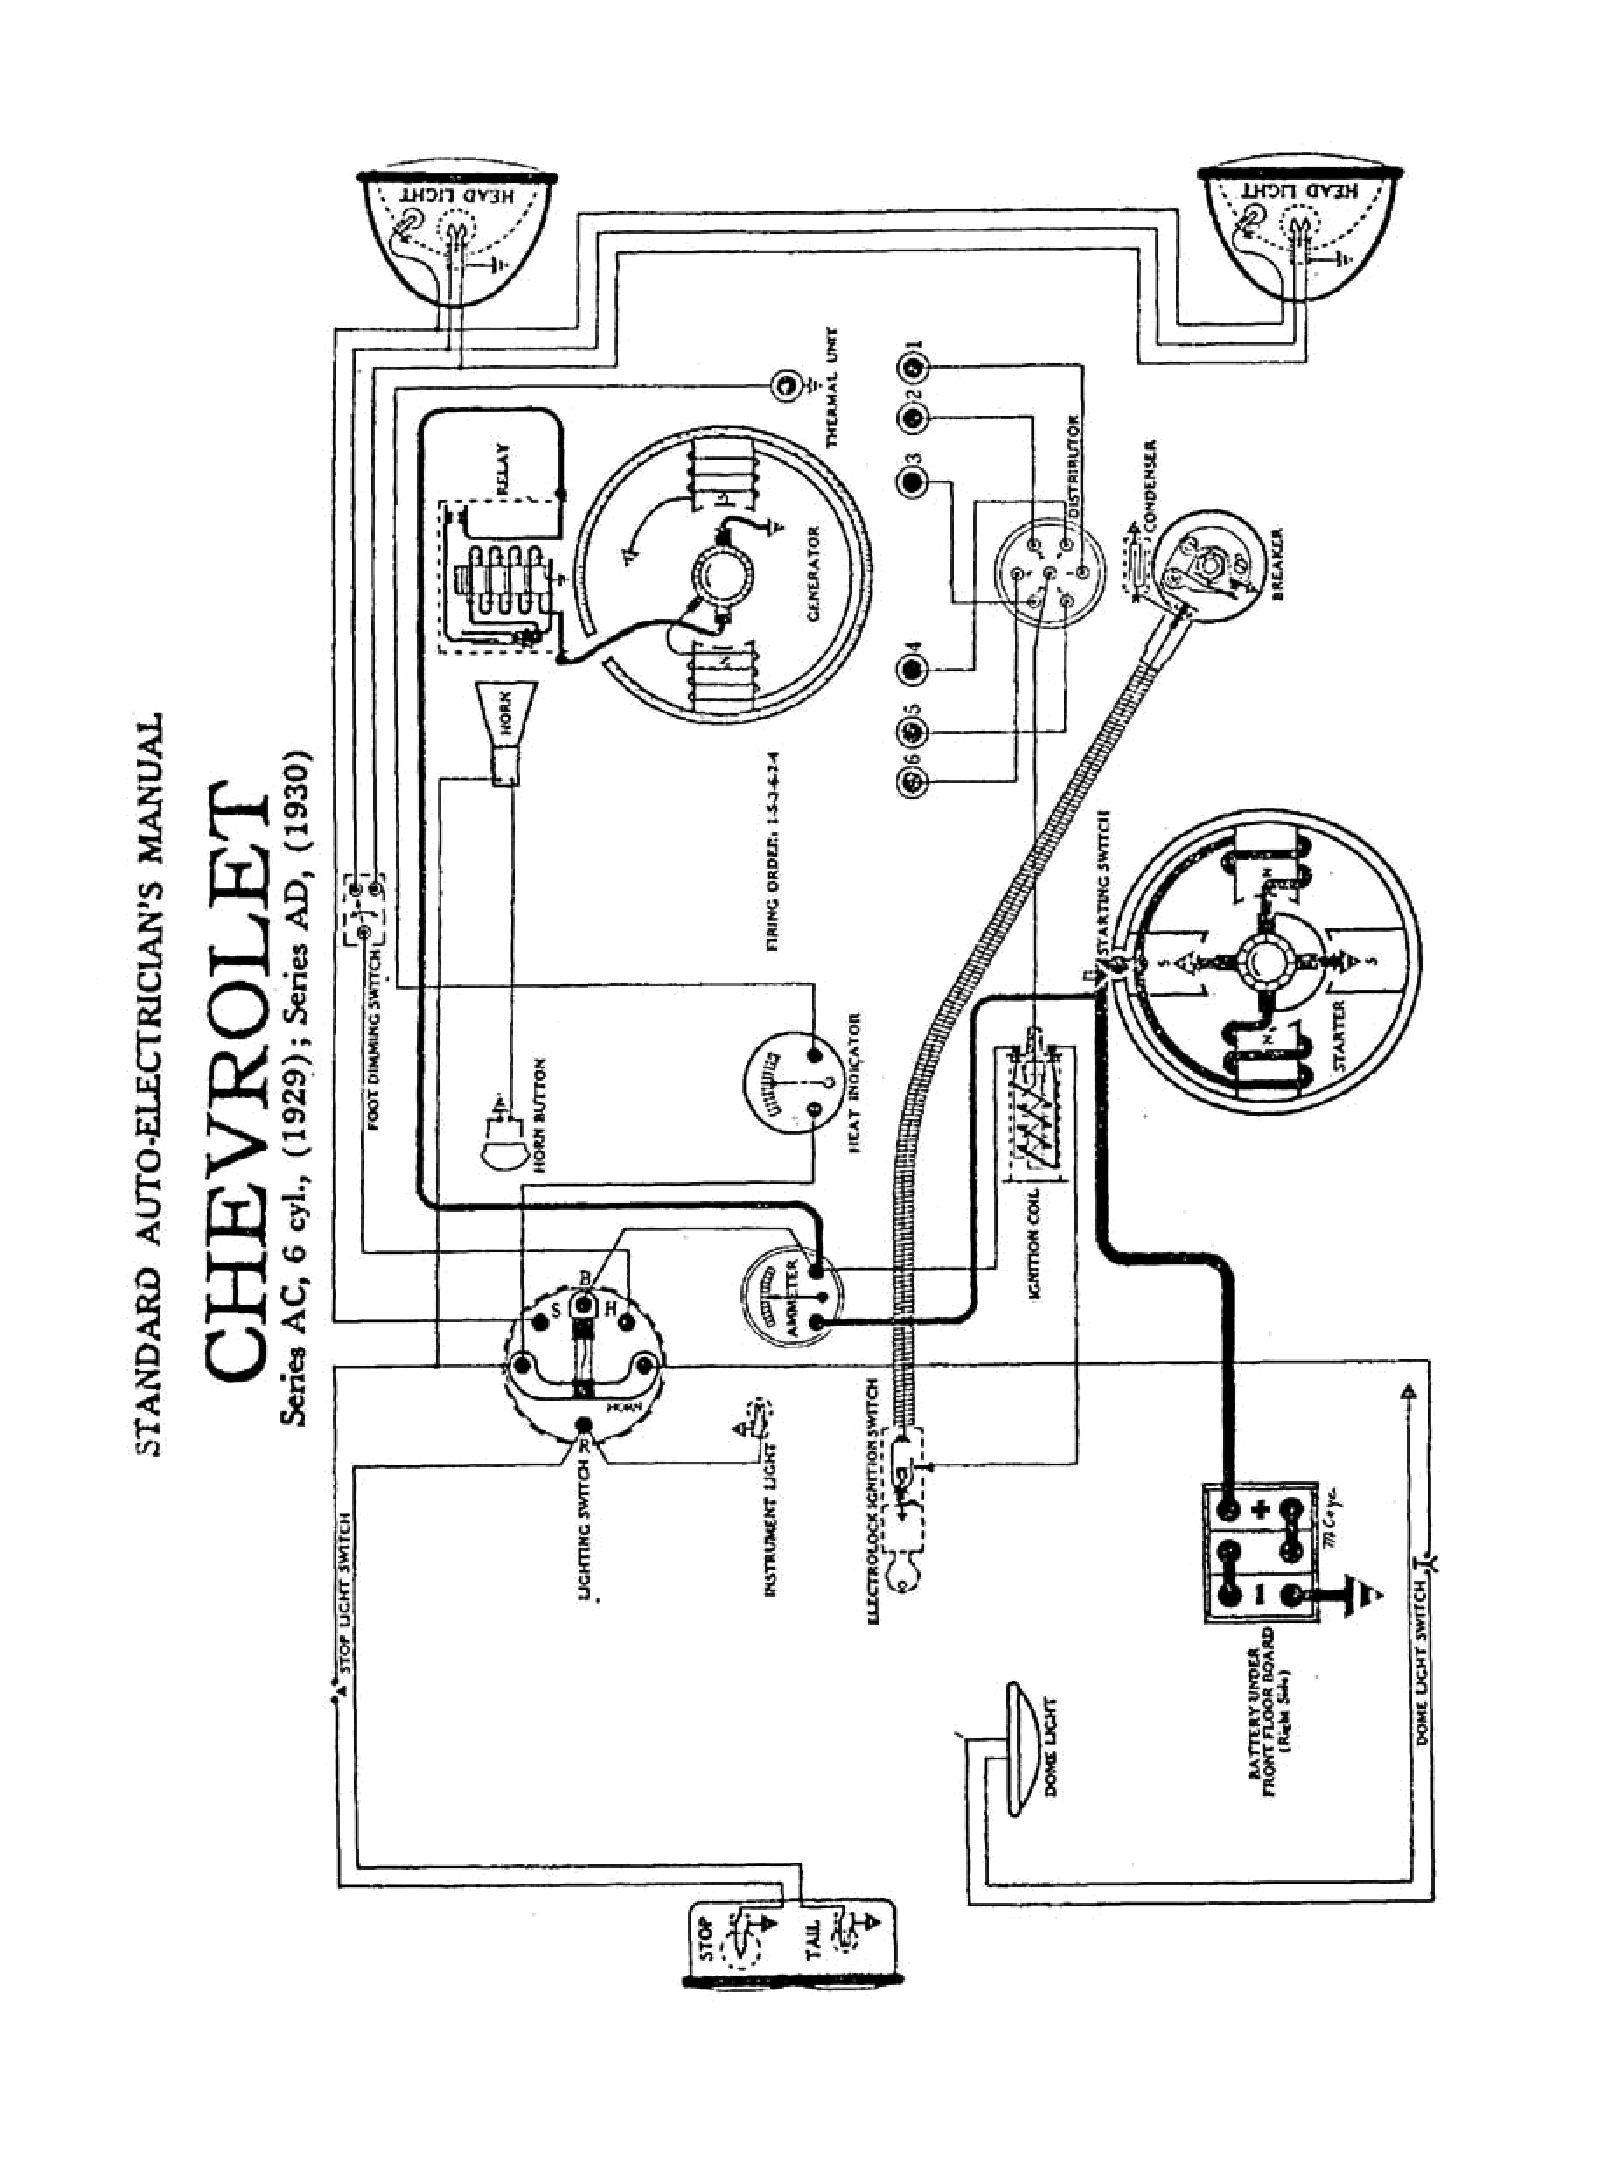 Ford Pick Up Wiring Diagram